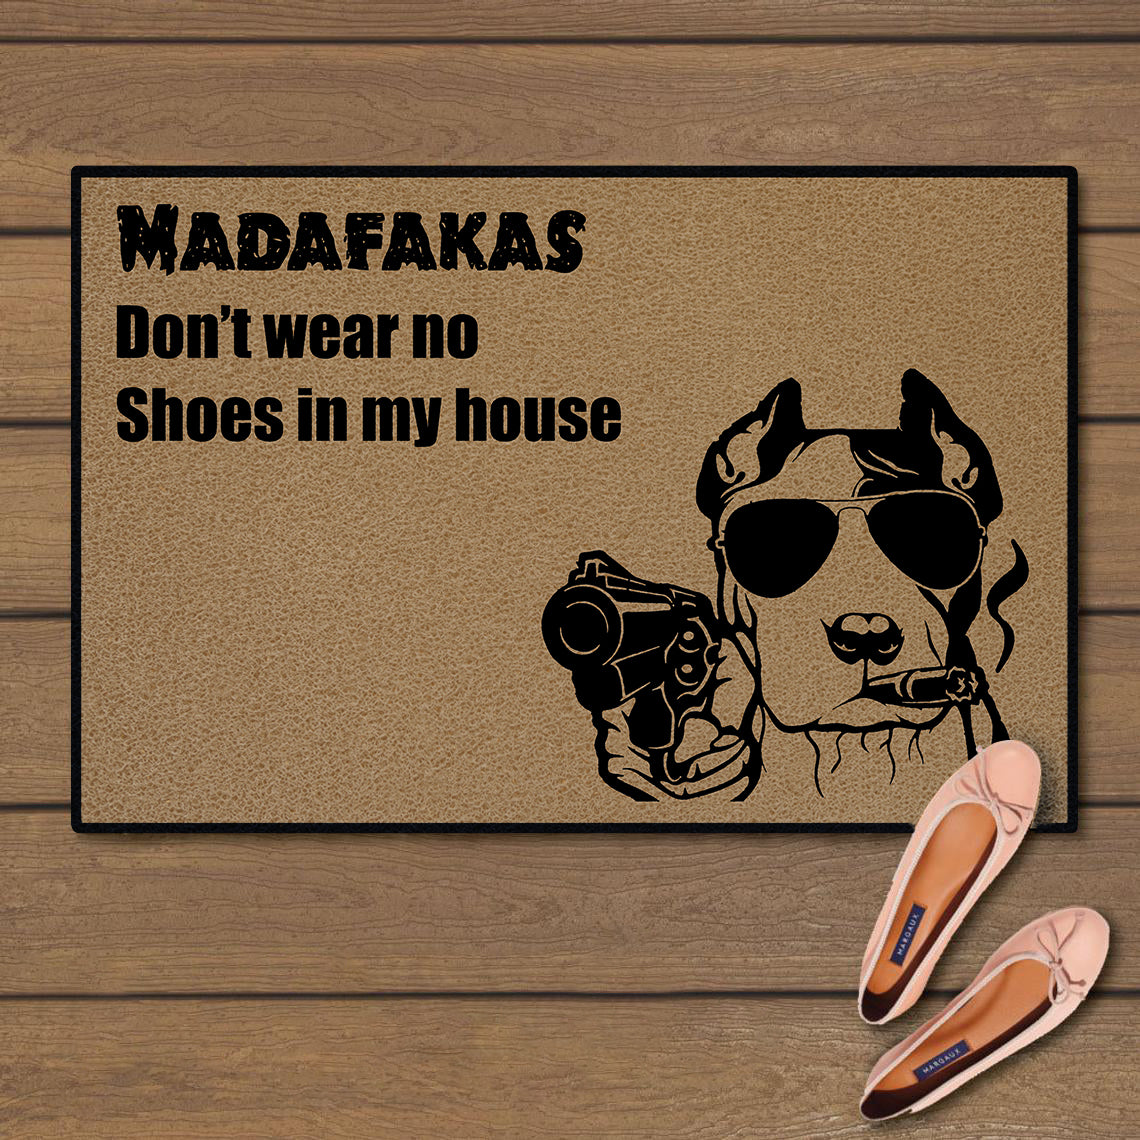 Madafakas don't wear no shoes in my house - pitbull doormat